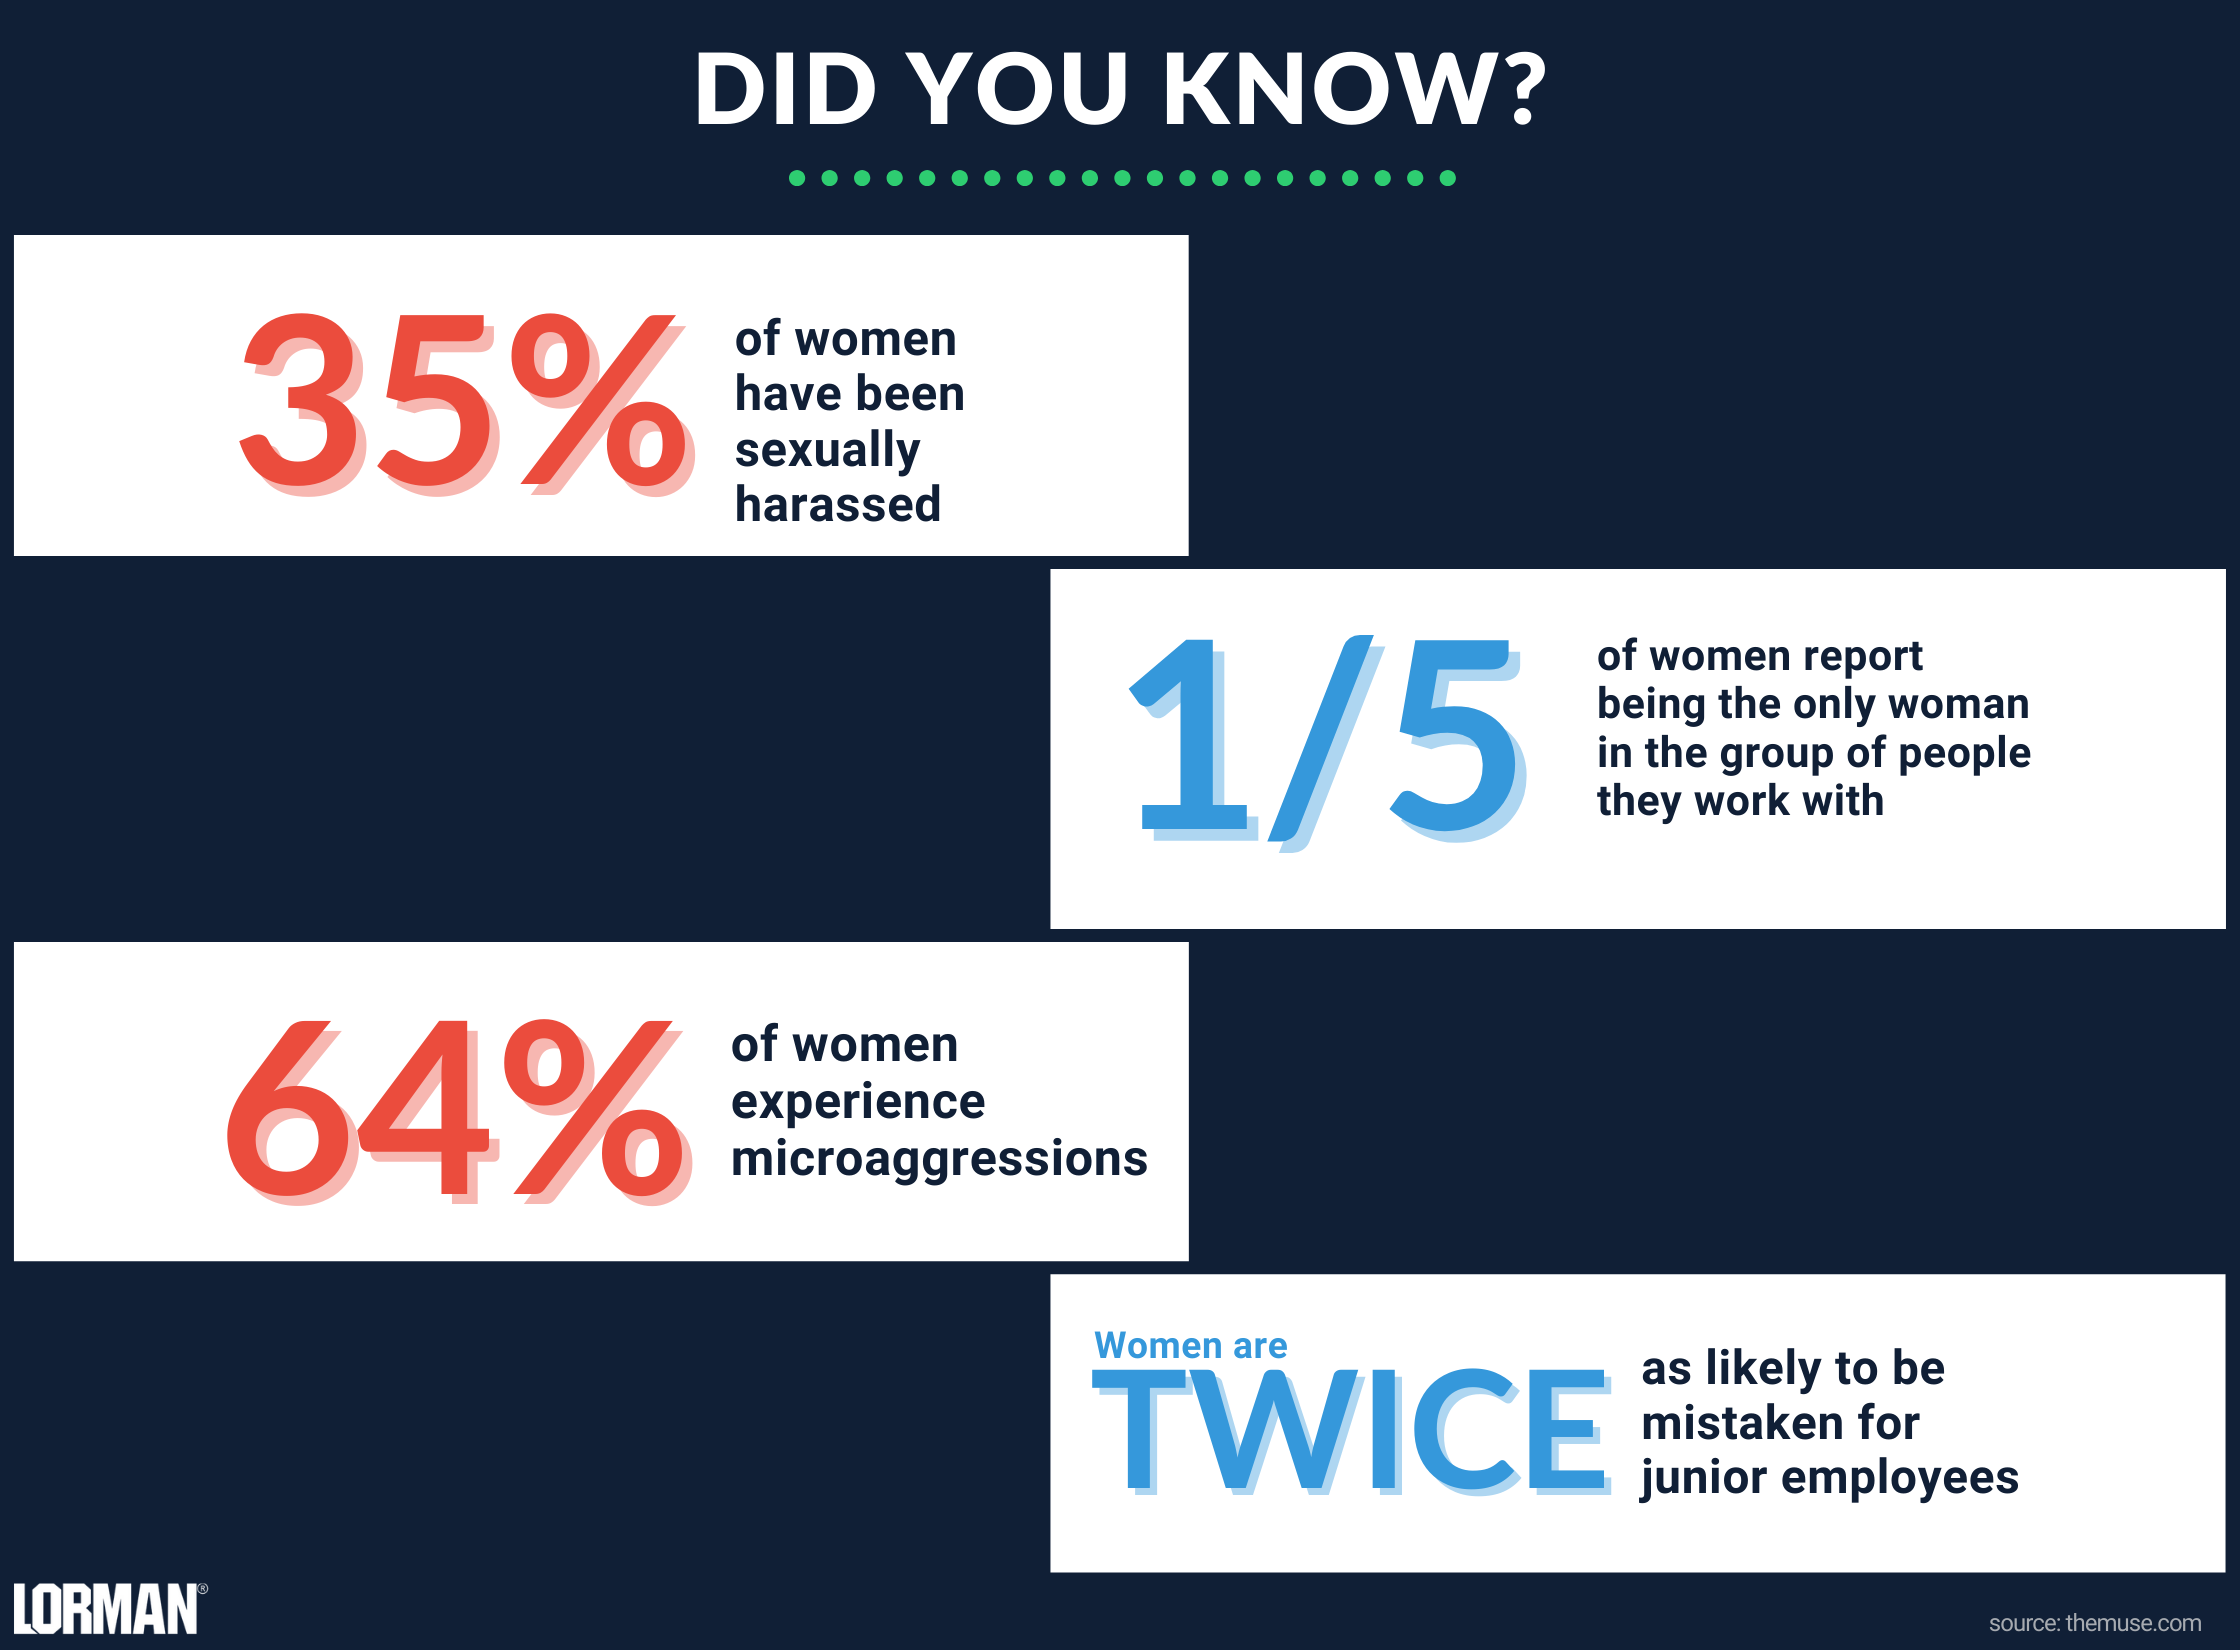 Infographic displaying statistics of gender inequality in the workplace.